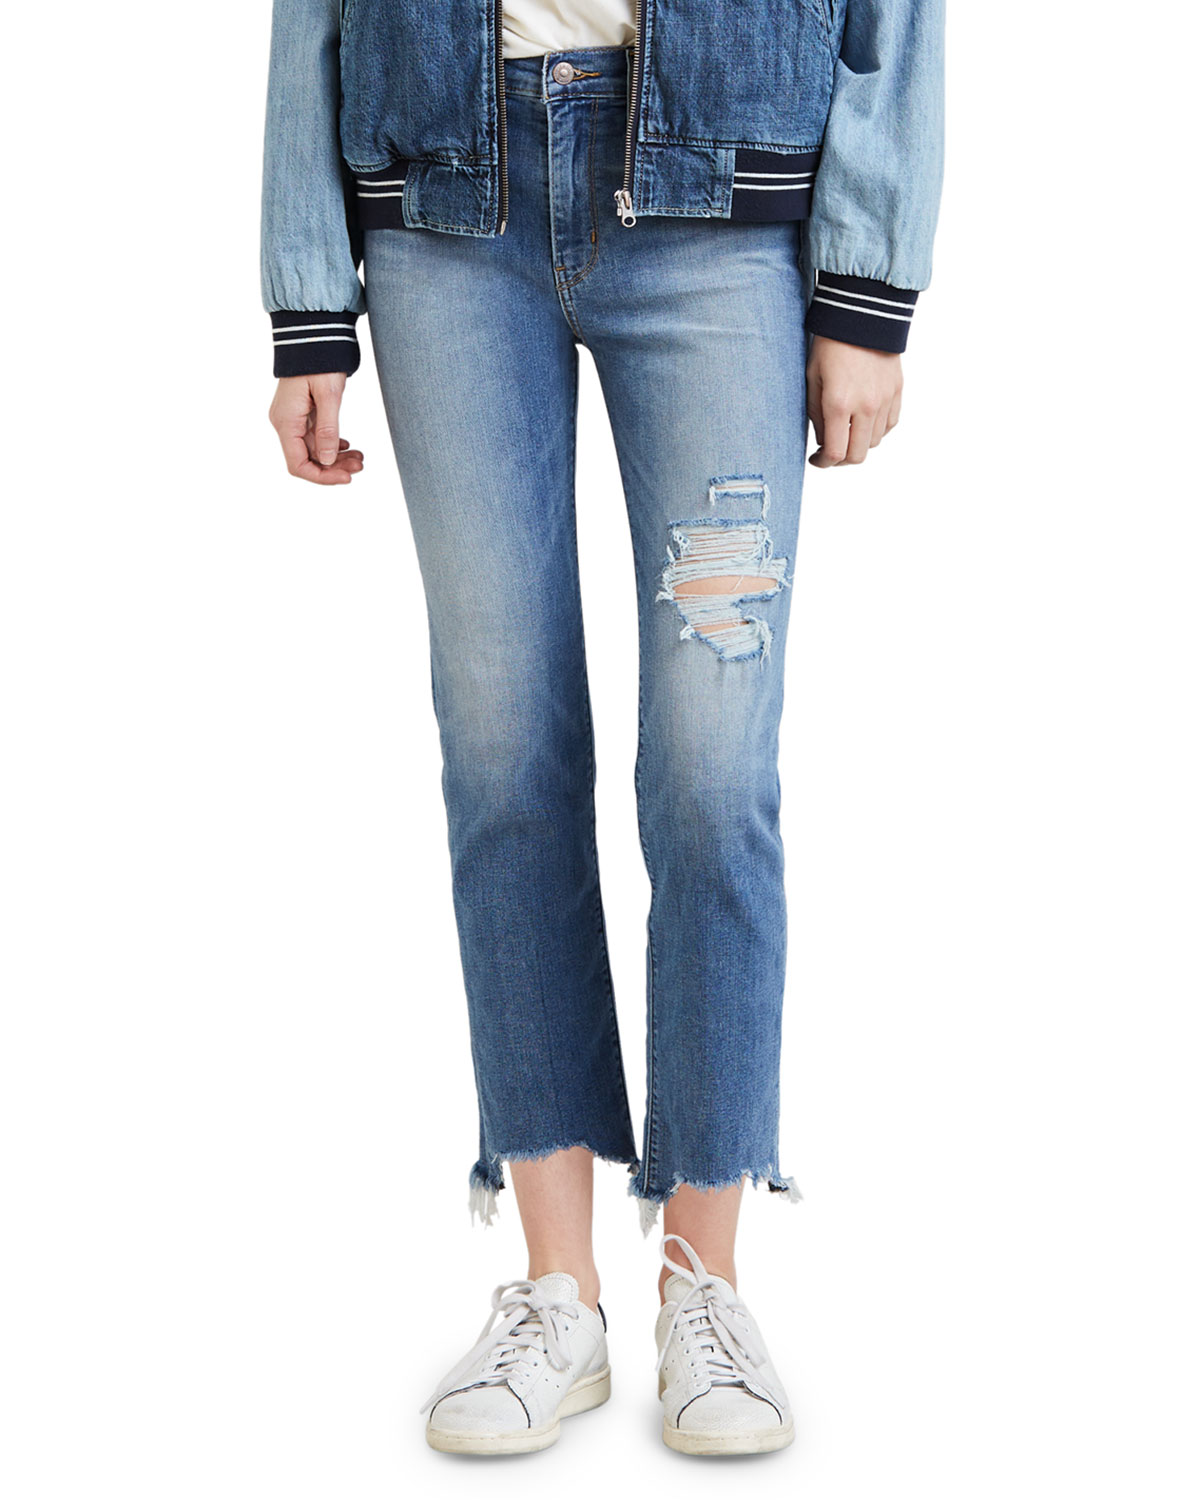 0192c0a004152 Levi s Premium 724 High-Rise Distressed Straight Cropped Jeans ...